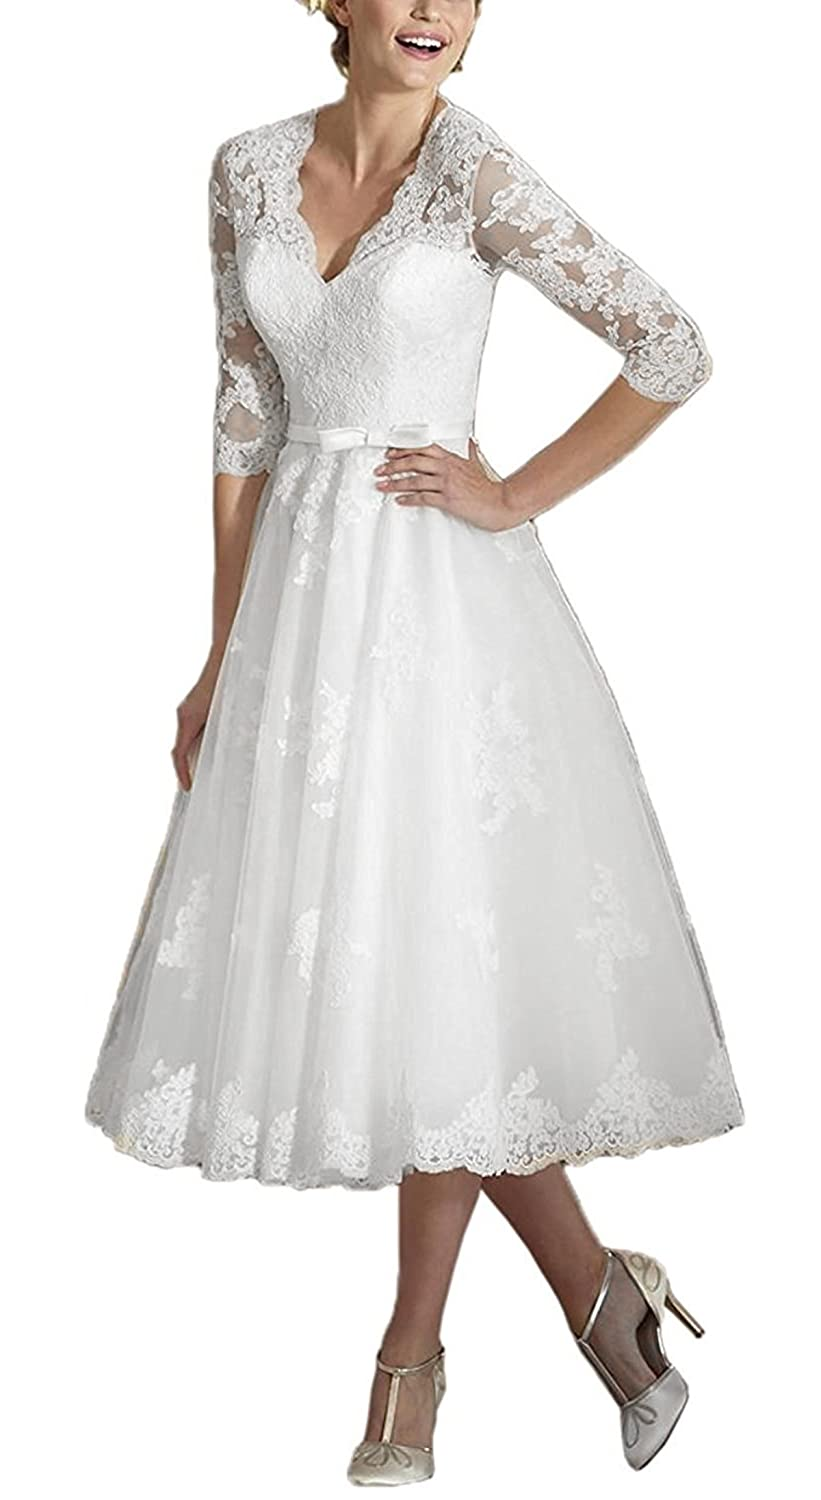 BRL MALL Women s Tea Length V Neck Lace Wedding Dress with Half Sleeves for  Bridal 2018 WD03 at Amazon Women s Clothing store  d84c245376